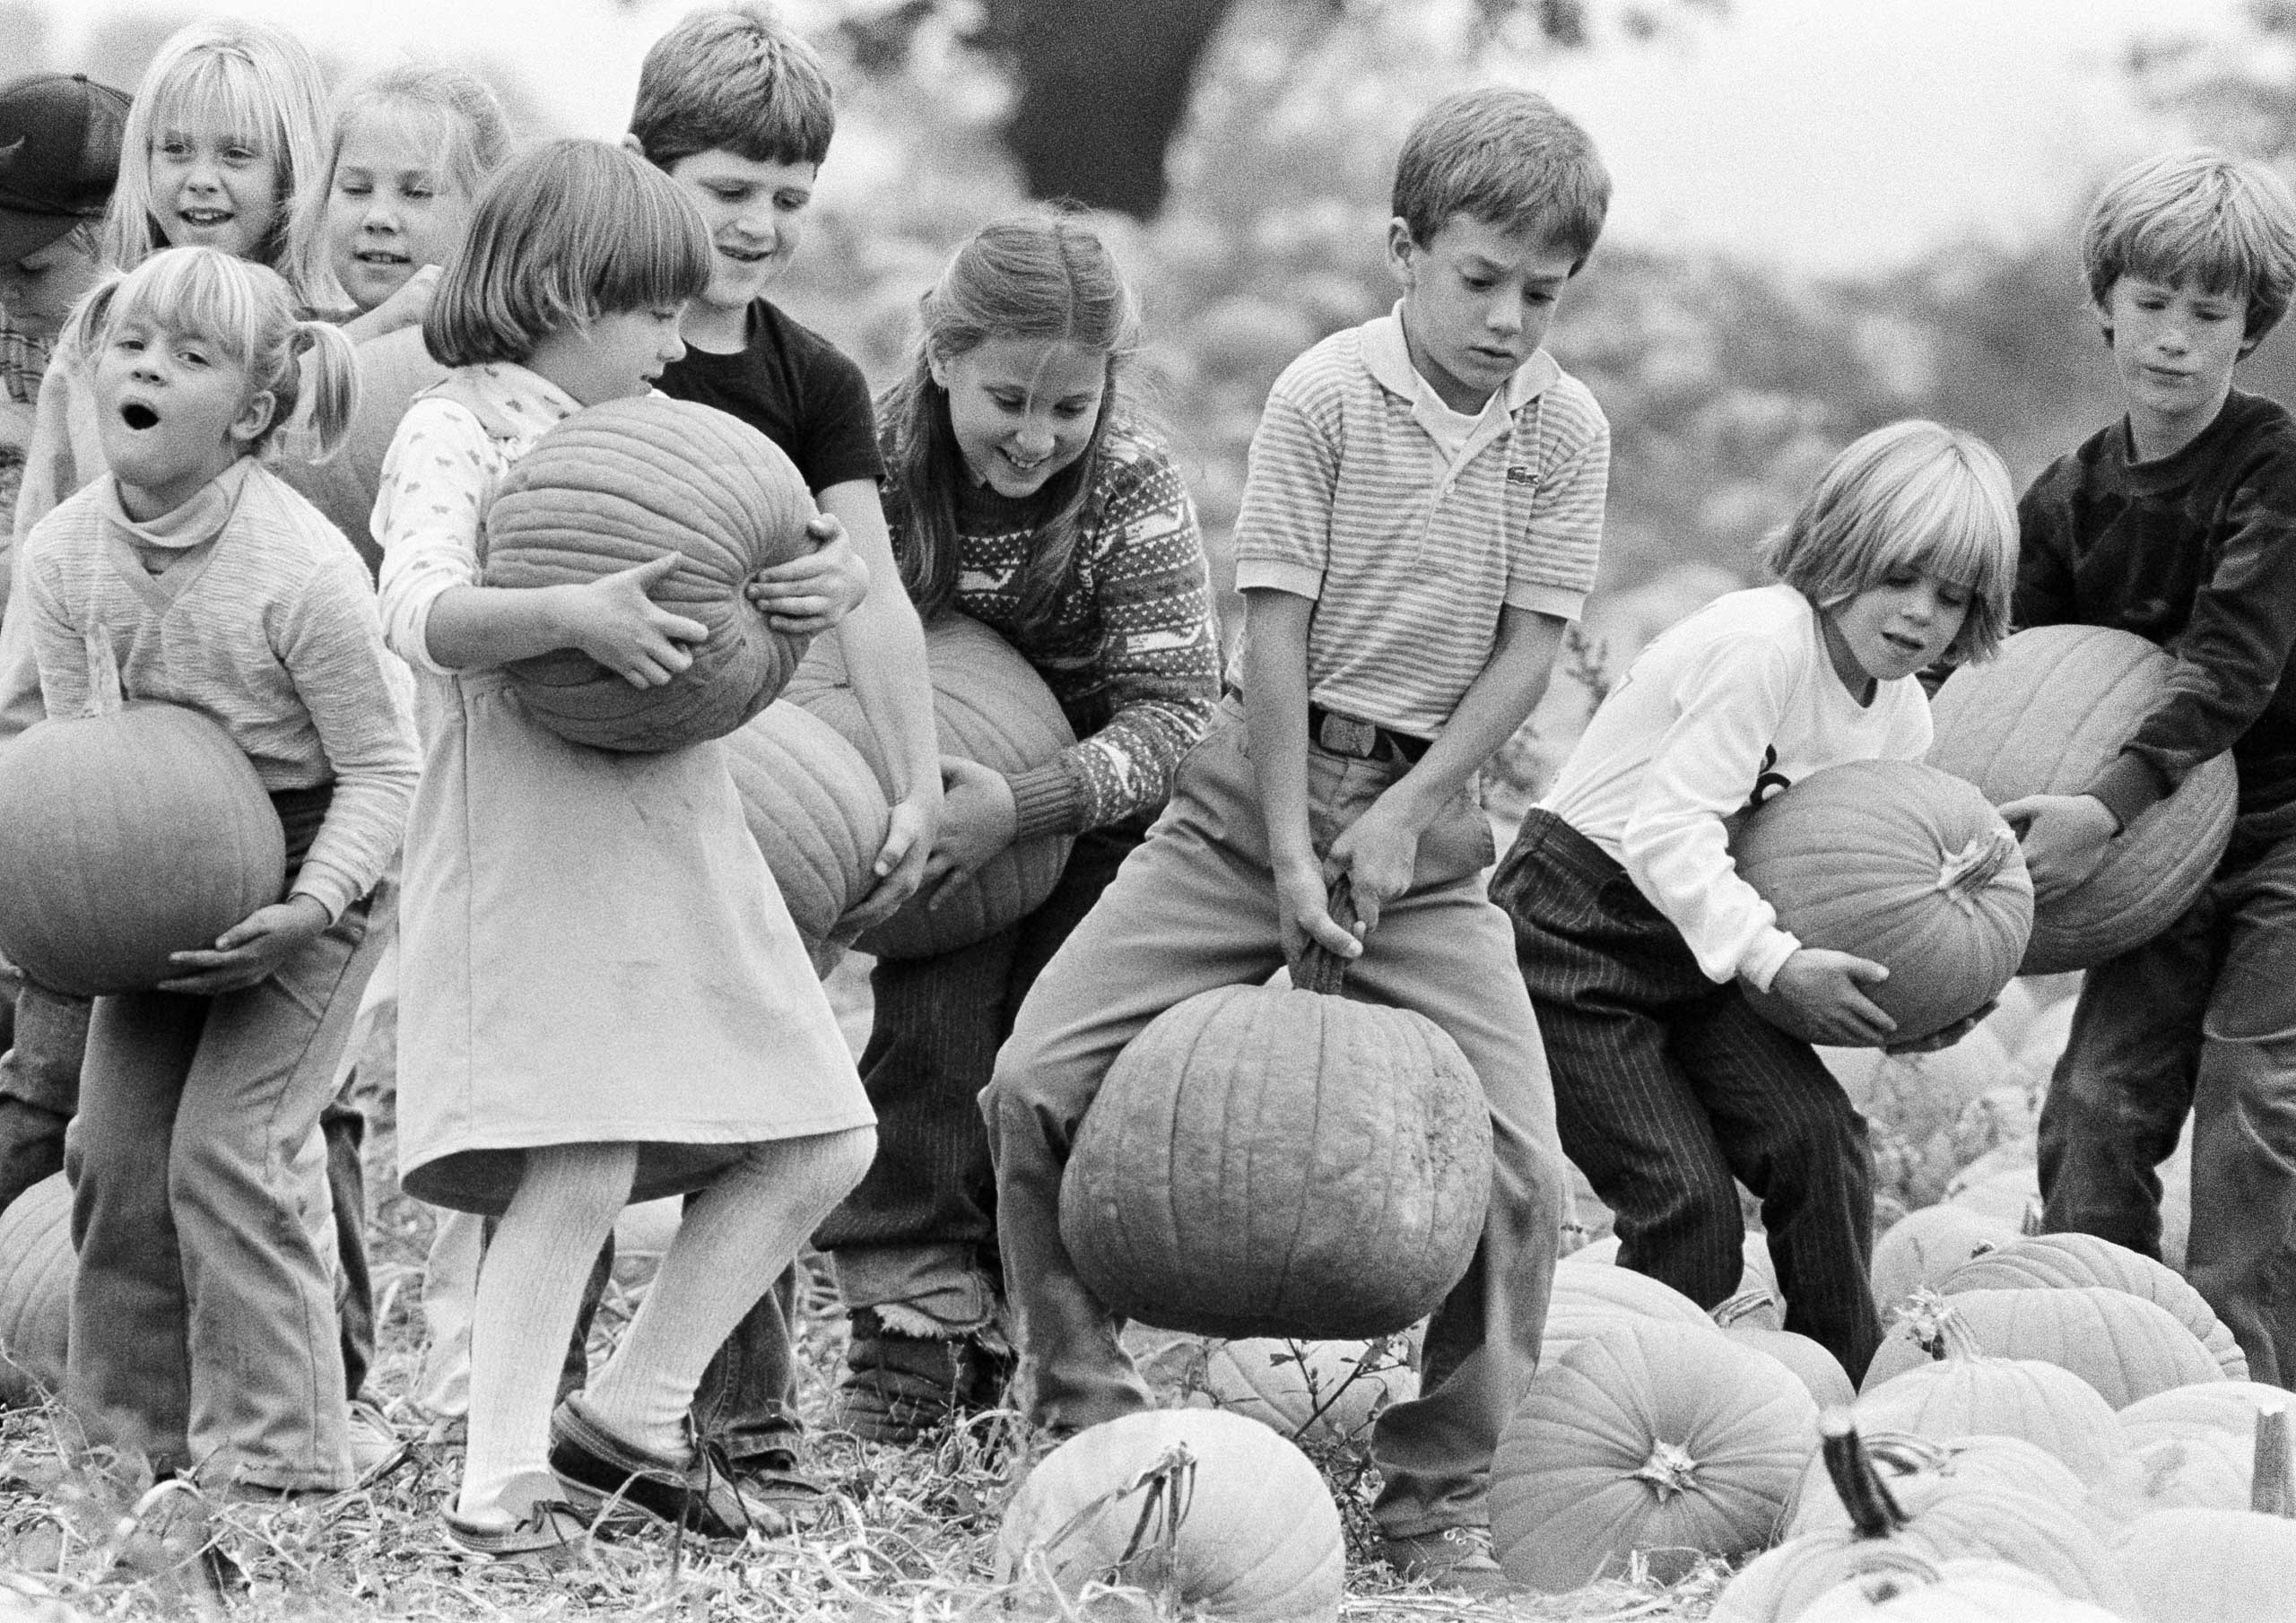 Second-graders pick their pumpkins during a class outing Oct. 19, 1984, at a farm next to their school near Doylestown, Pa.